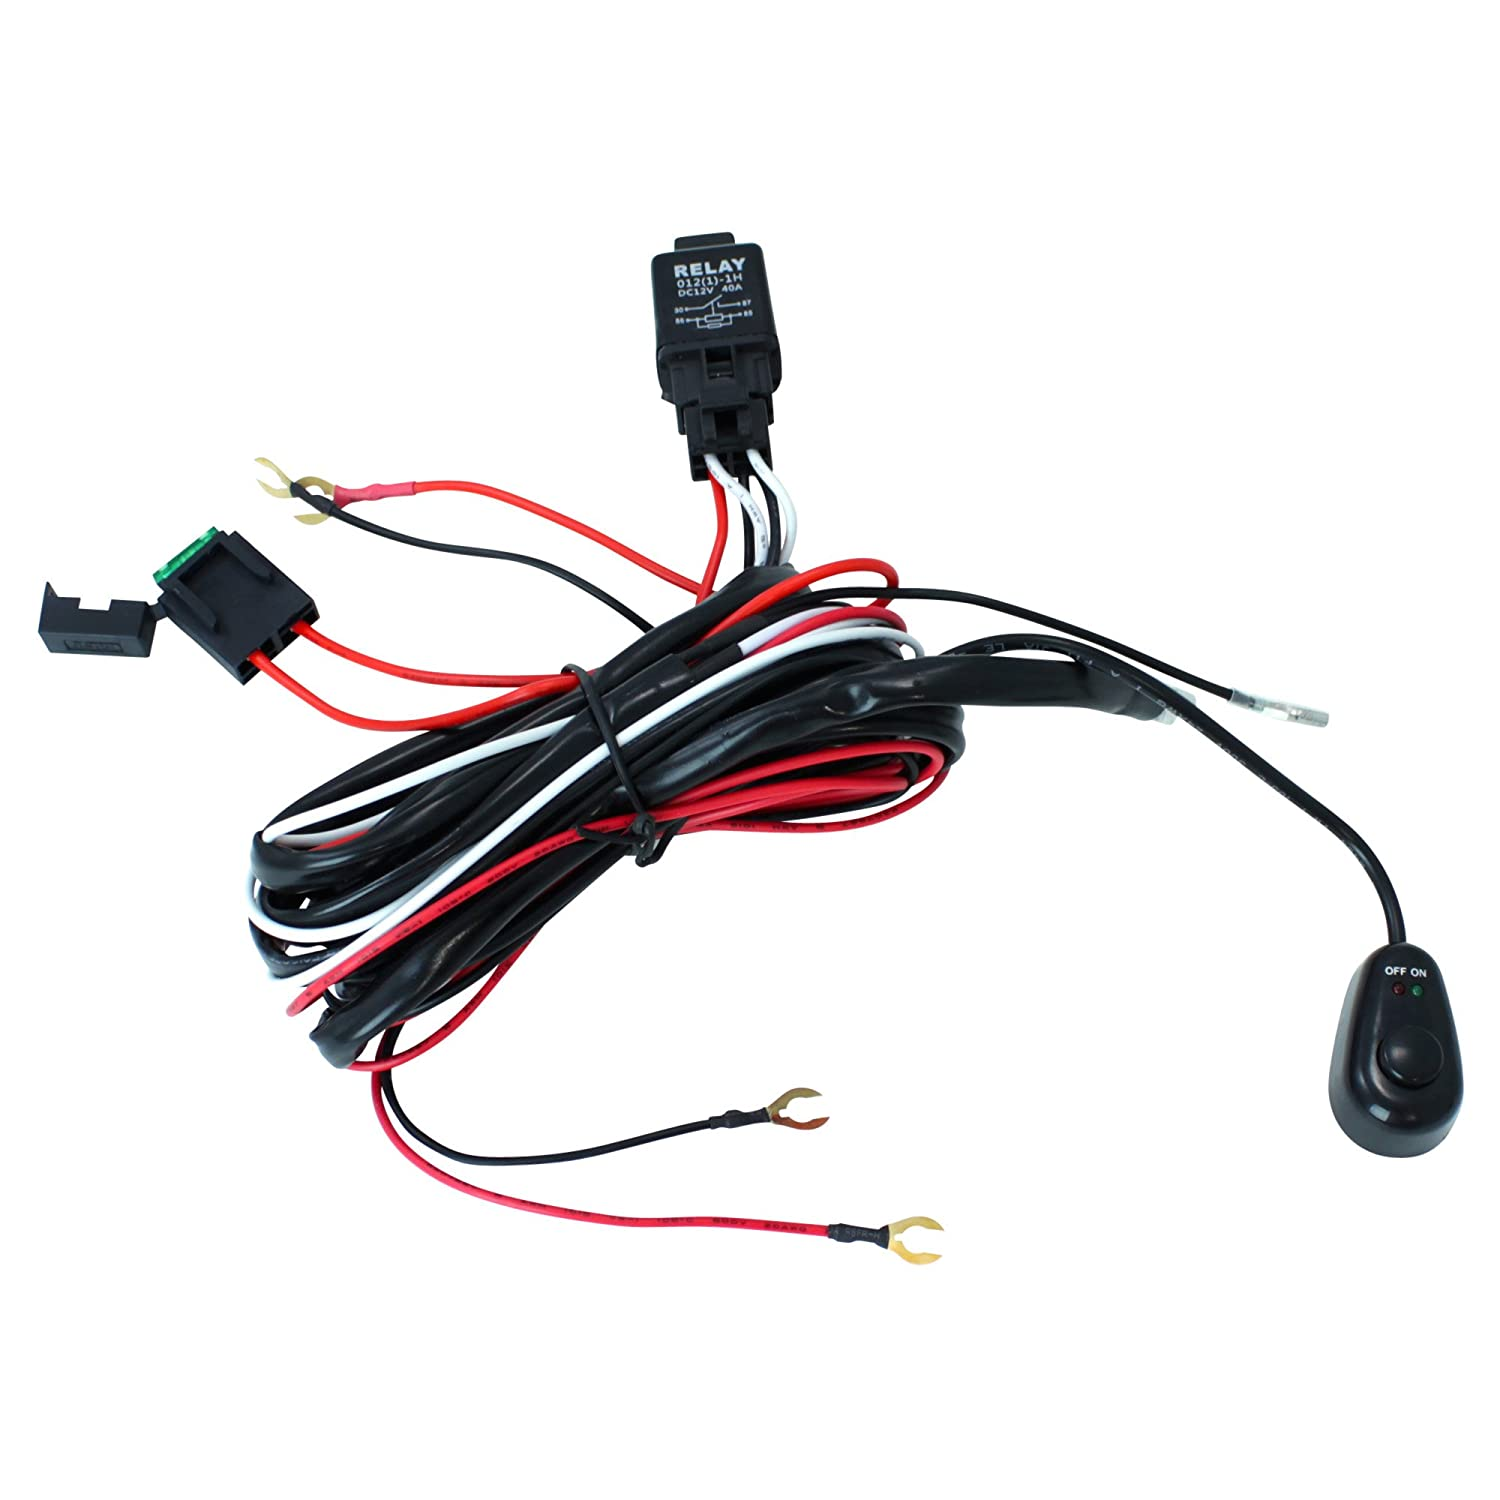 71ONjFALDCL._SL1500_ amazon com dt moto™ off road atv jeep led light bar wiring off road wiring harness at gsmx.co